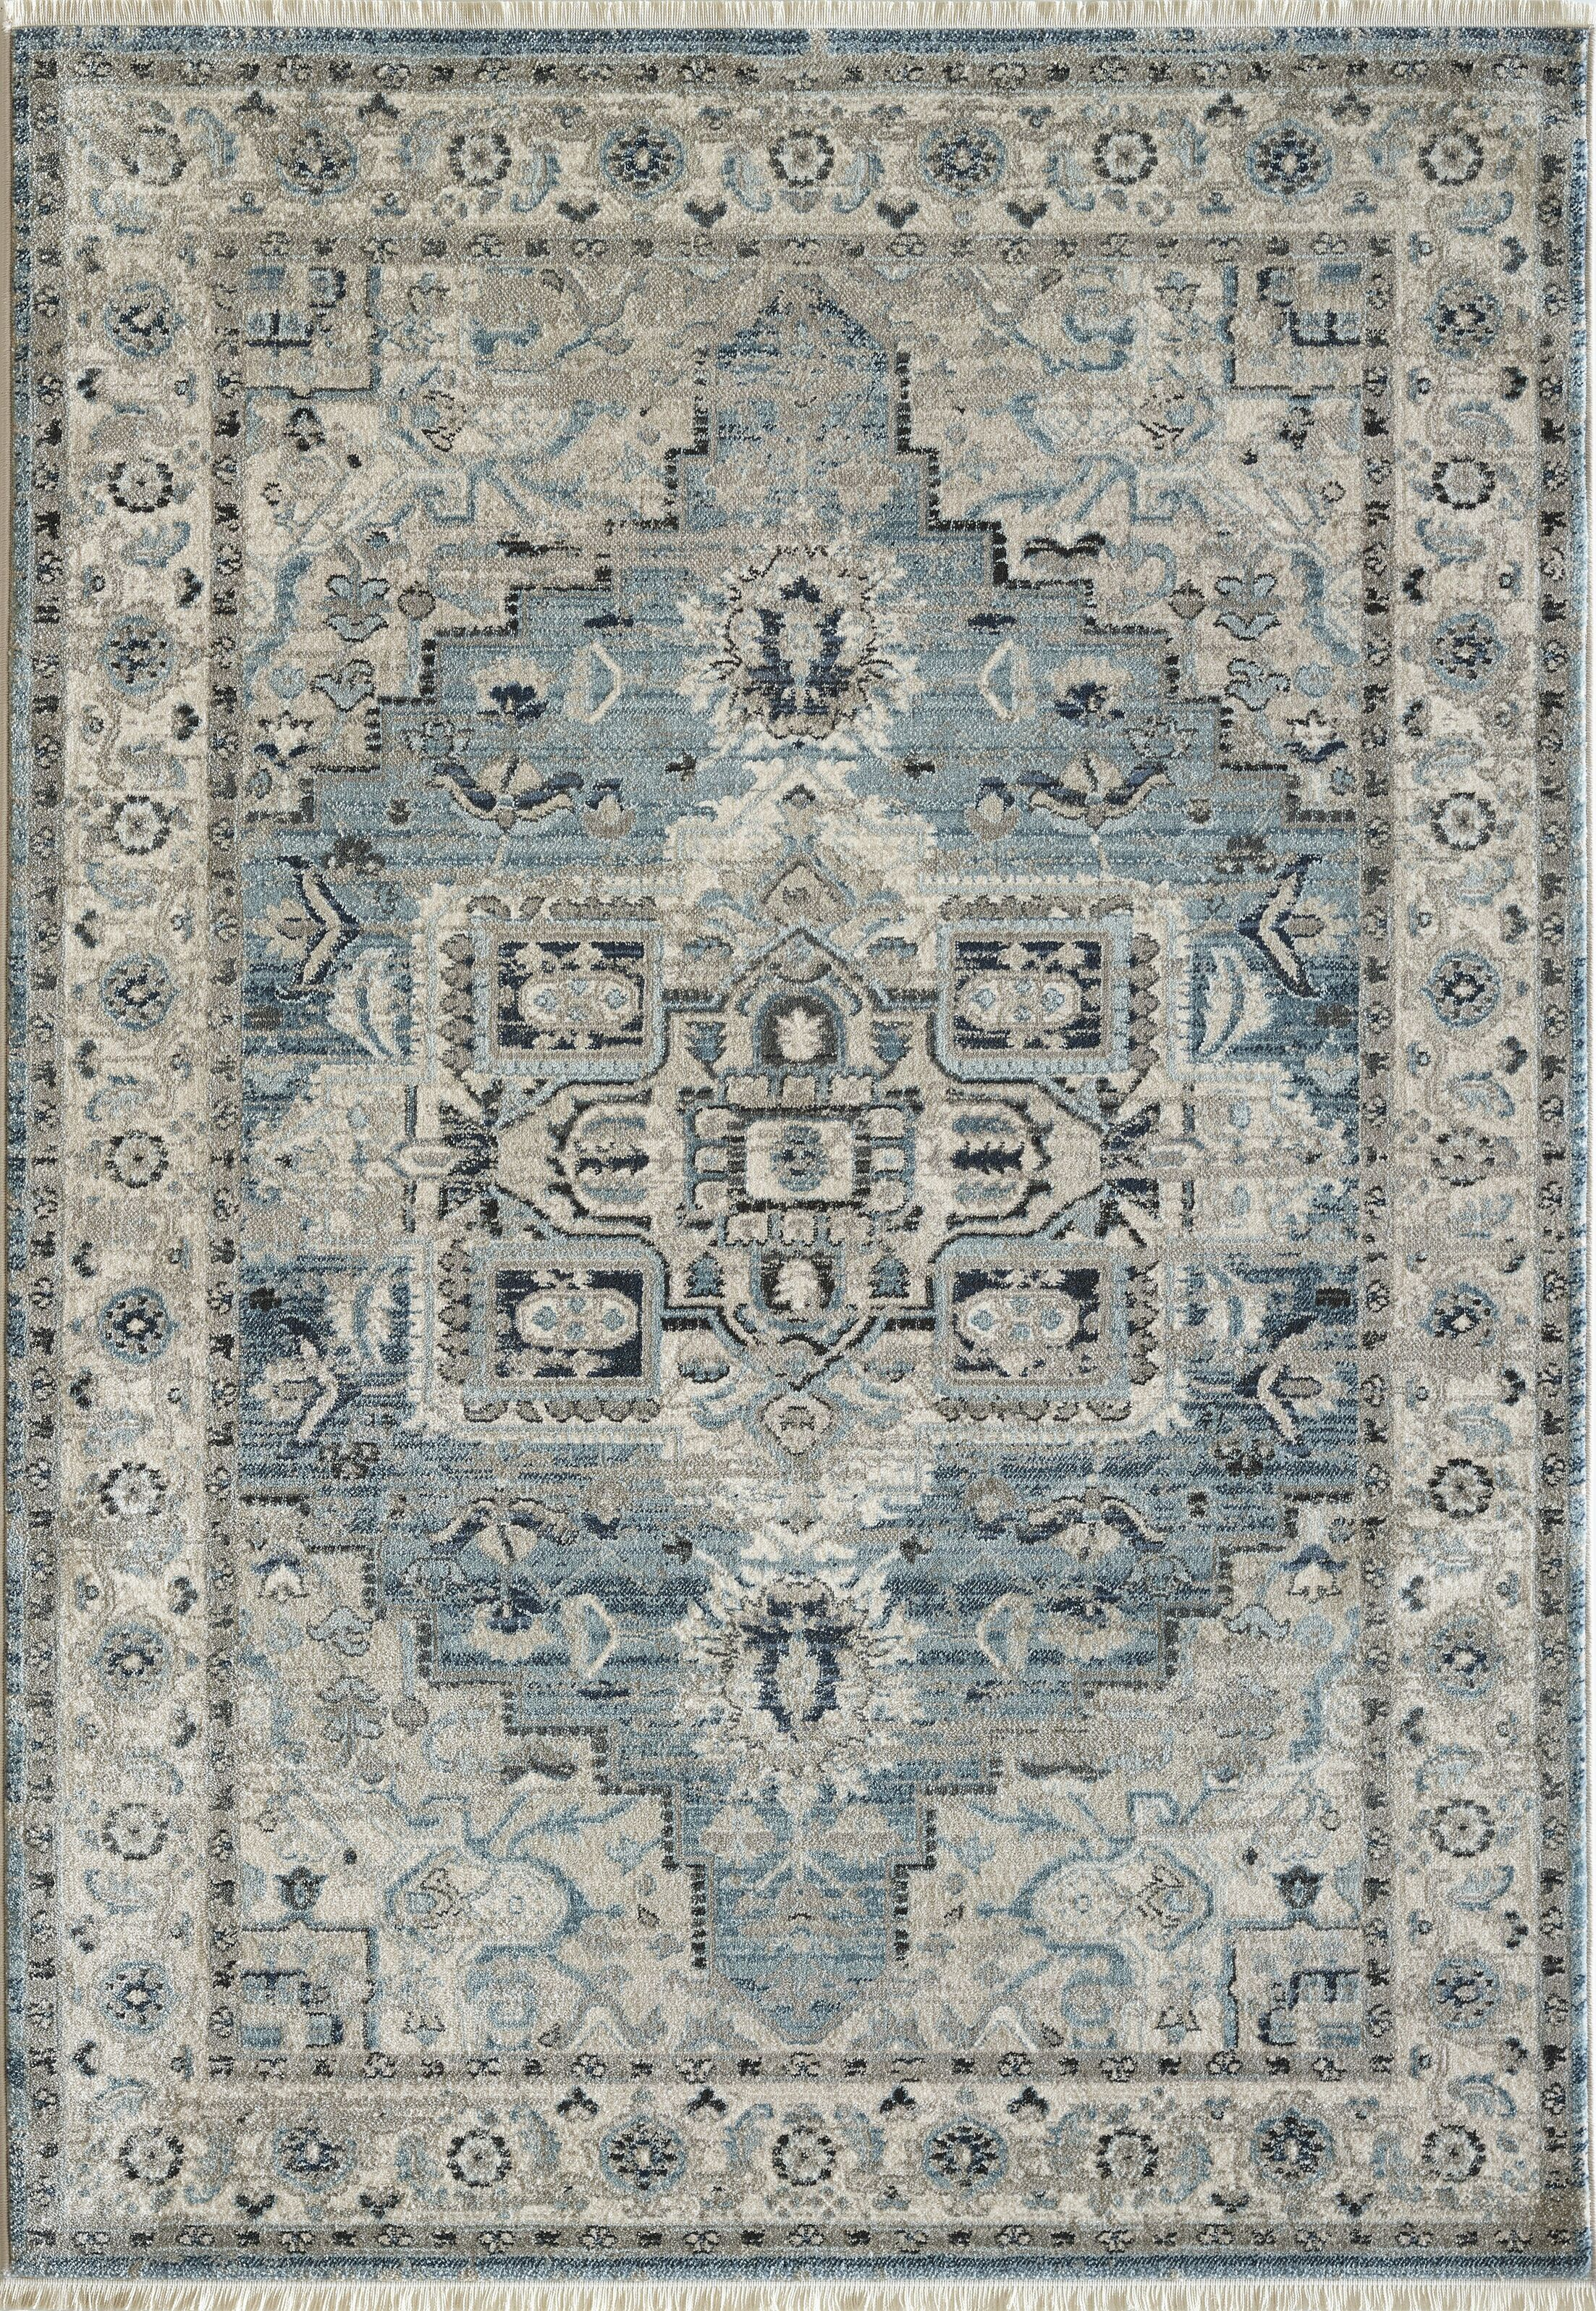 Omarion Light Blue/Cream Area Rug Rug Size: Rectangle 7'10